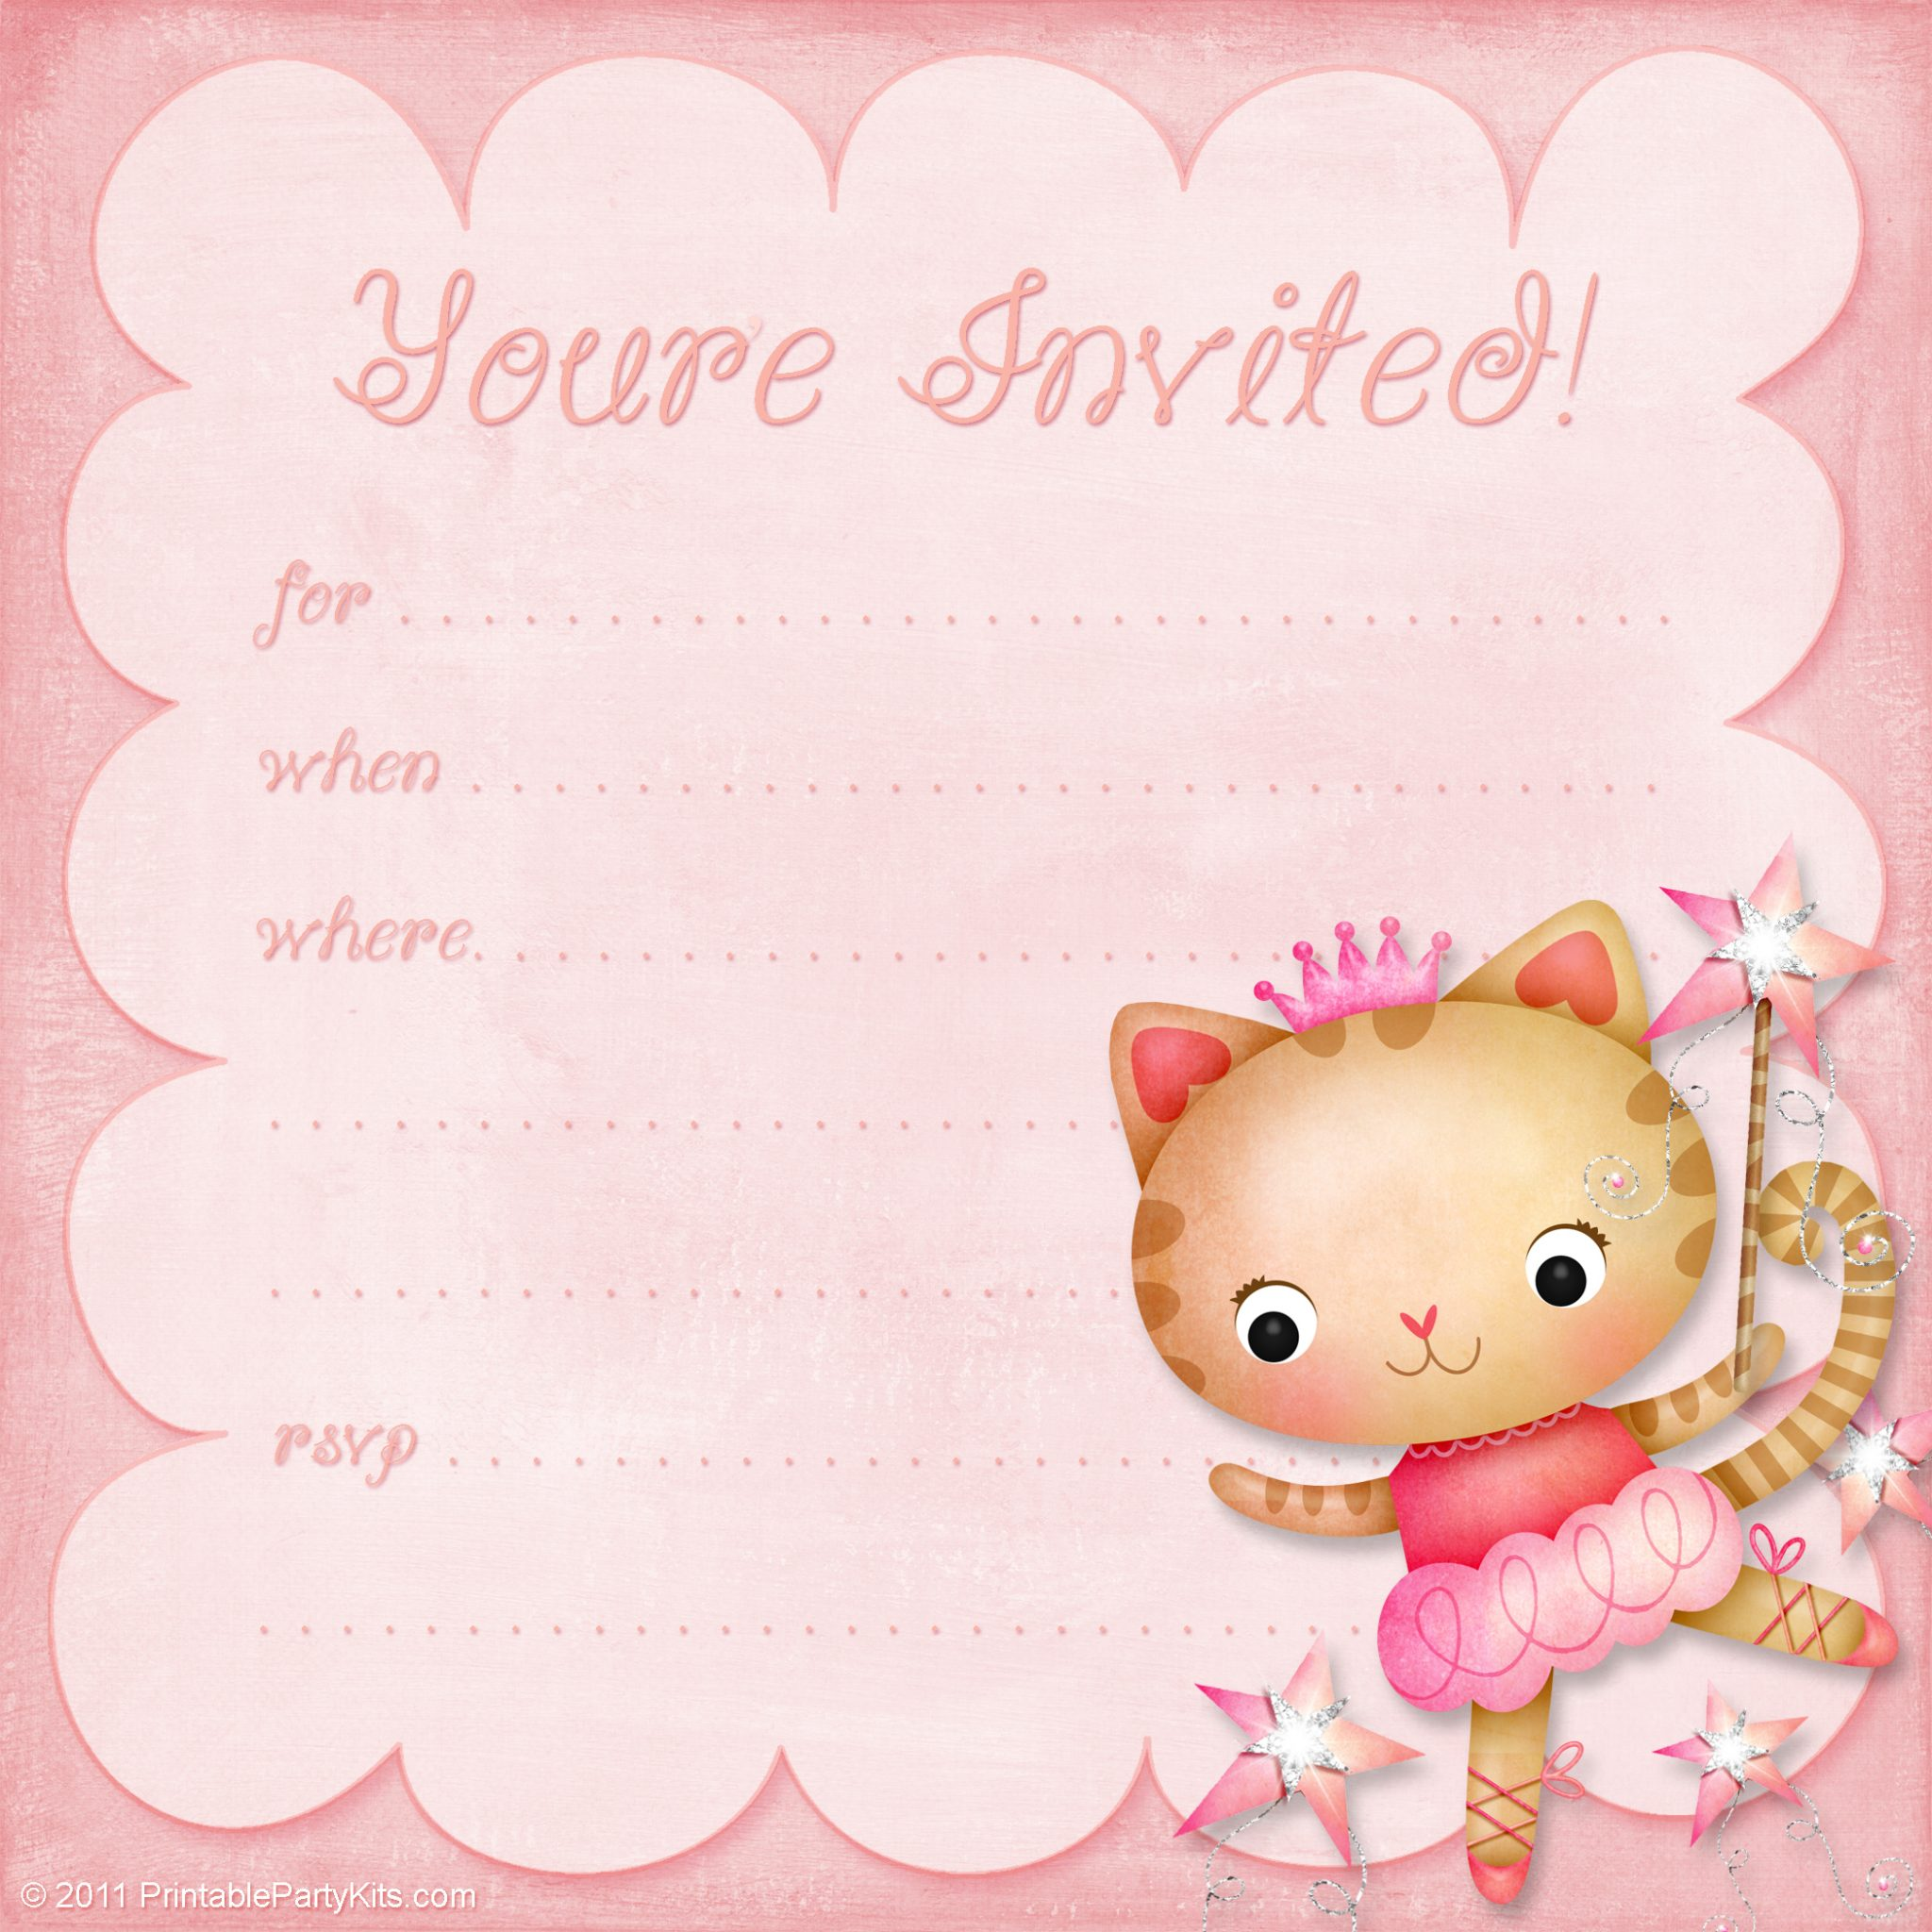 Girls birthday party invitation princess ballerina printable click on the free printable blank girls birthday invitation template below to enlarge and download it stopboris Gallery